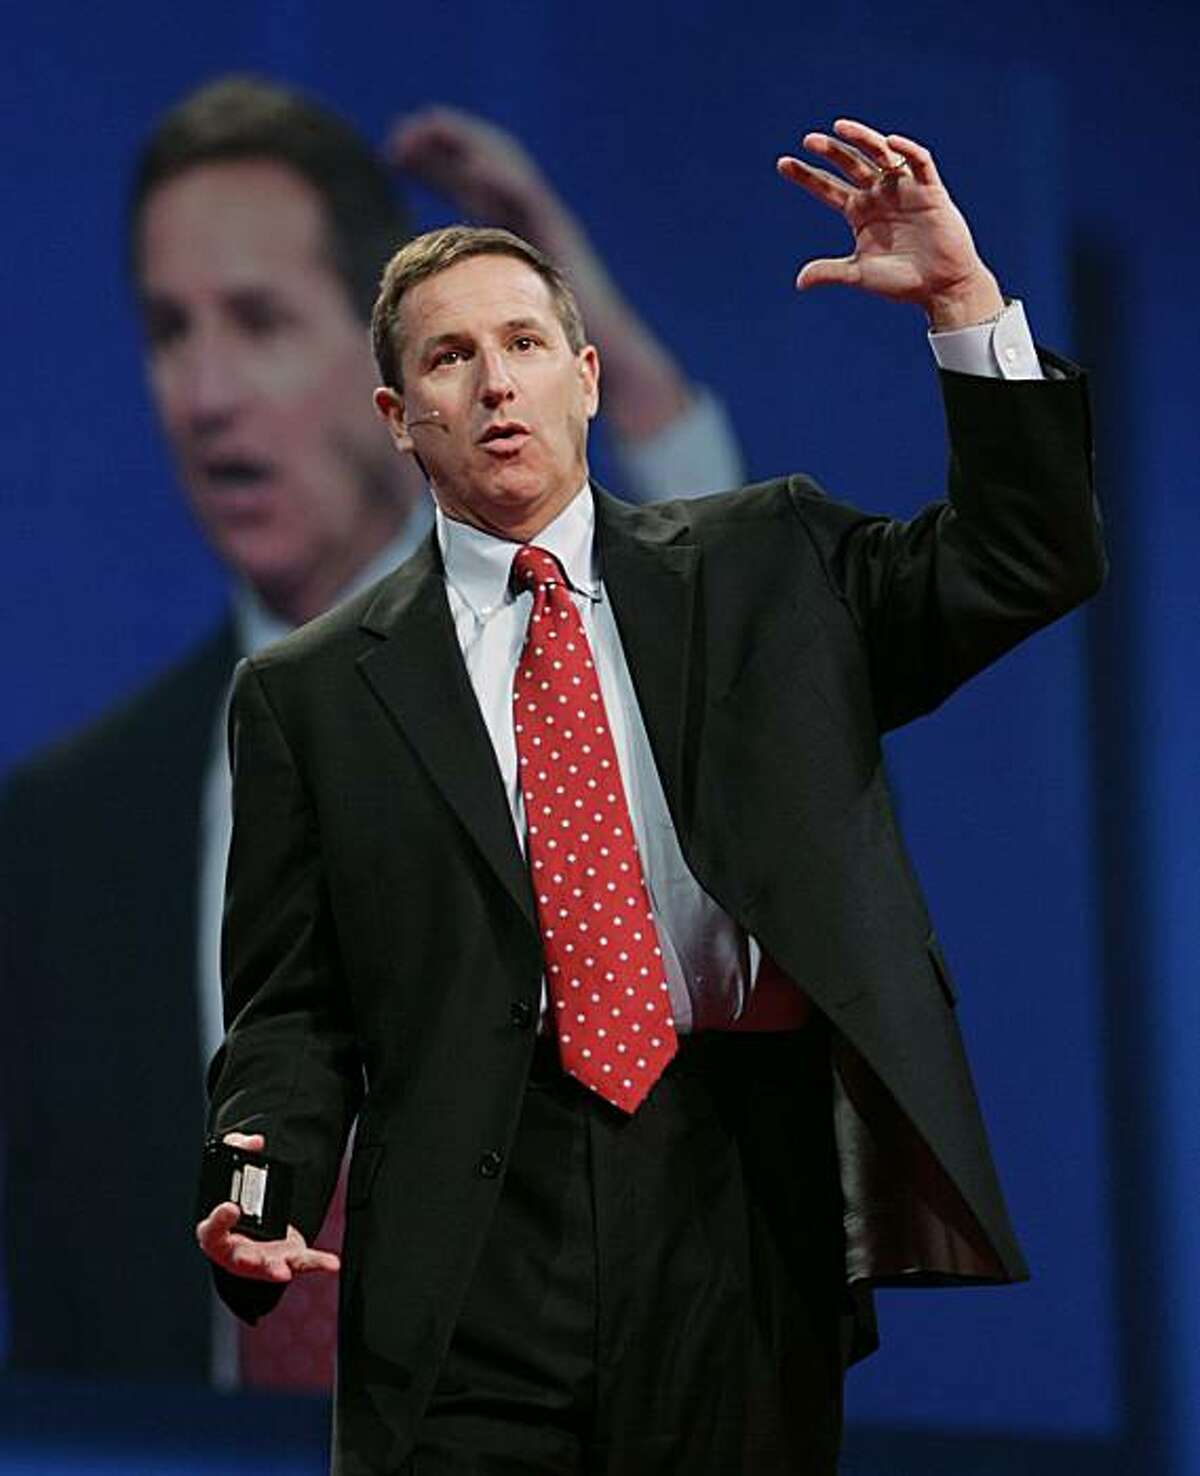 FILE - In this Oct. 24, 2006 file photo, Hewlett Packard CEO Mark Hurd gestures during a keynote address at the Oracle Open World conference in San Francisco. The woman at the center of the sexual harassment claim that forced the resignation of Hewlett-Packard Co. CEO Mark Hurd revealed her identity Sunday and said she is